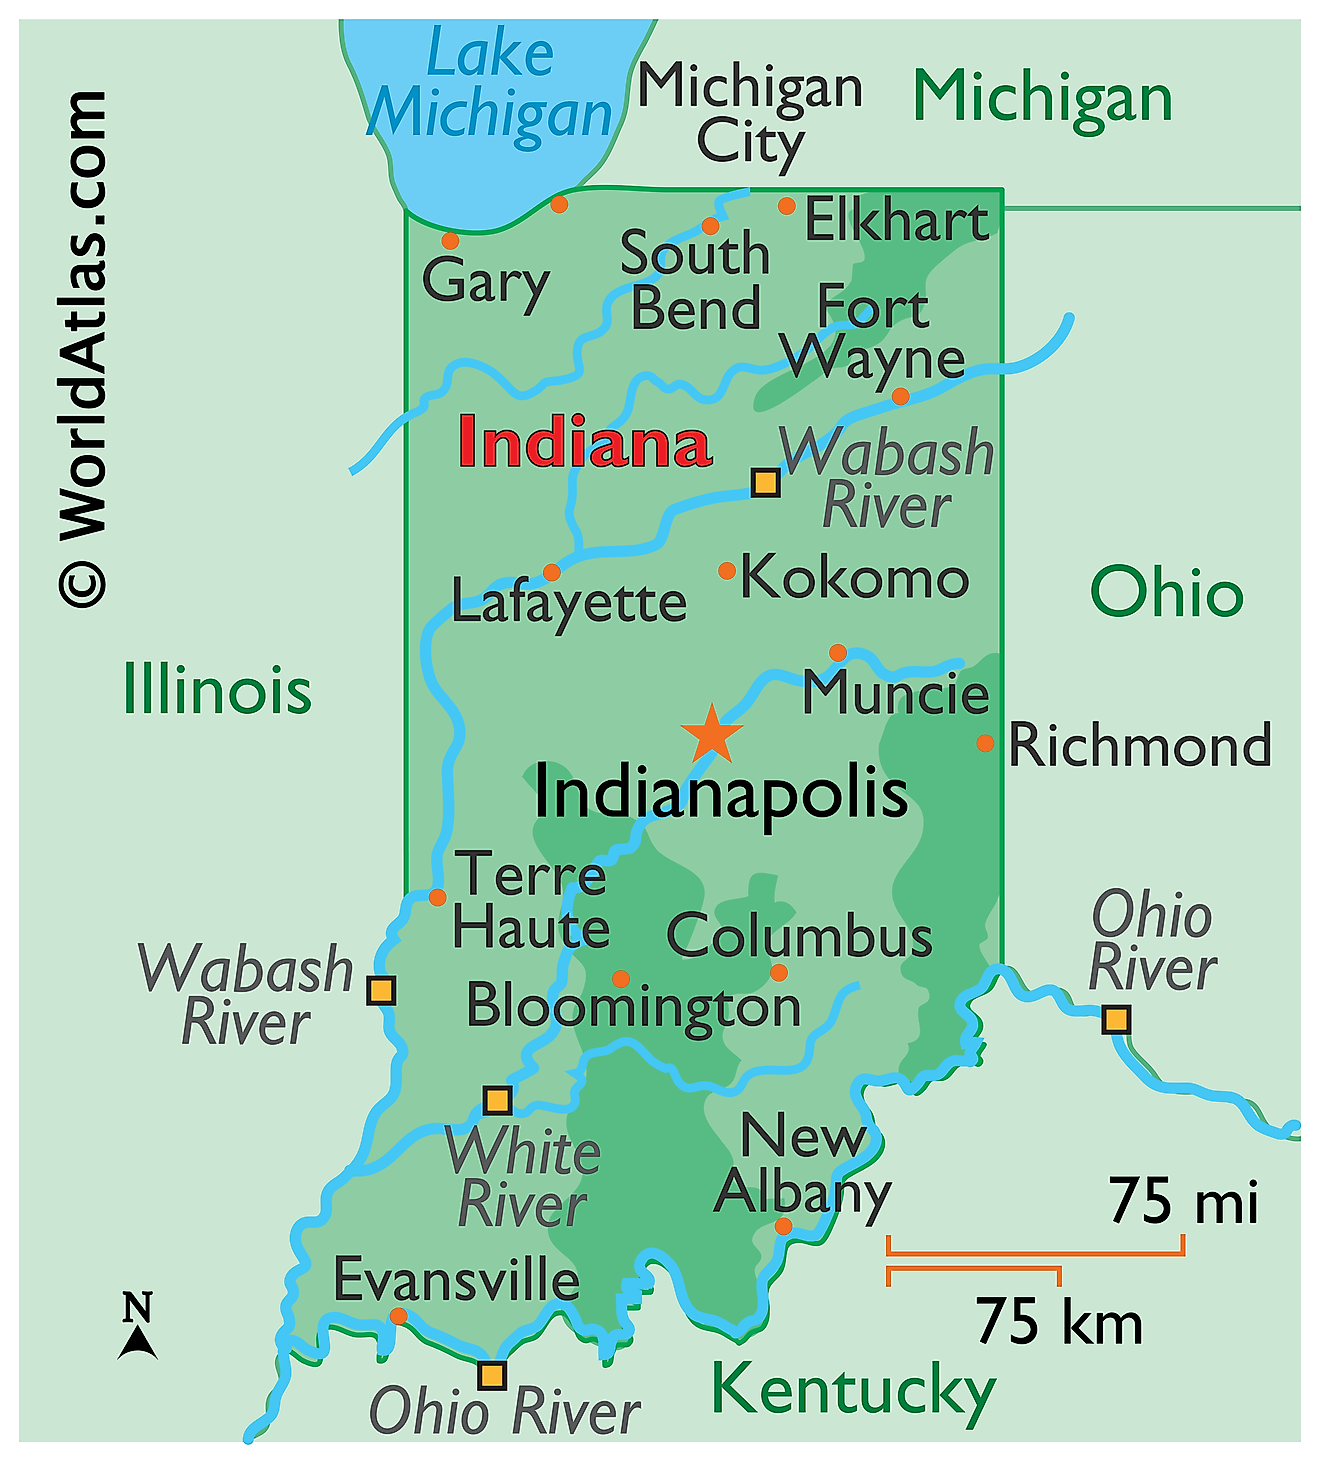 Physical Map of Indiana. It shows the physical features of Indiana including mountain ranges, major rivers and lakes.